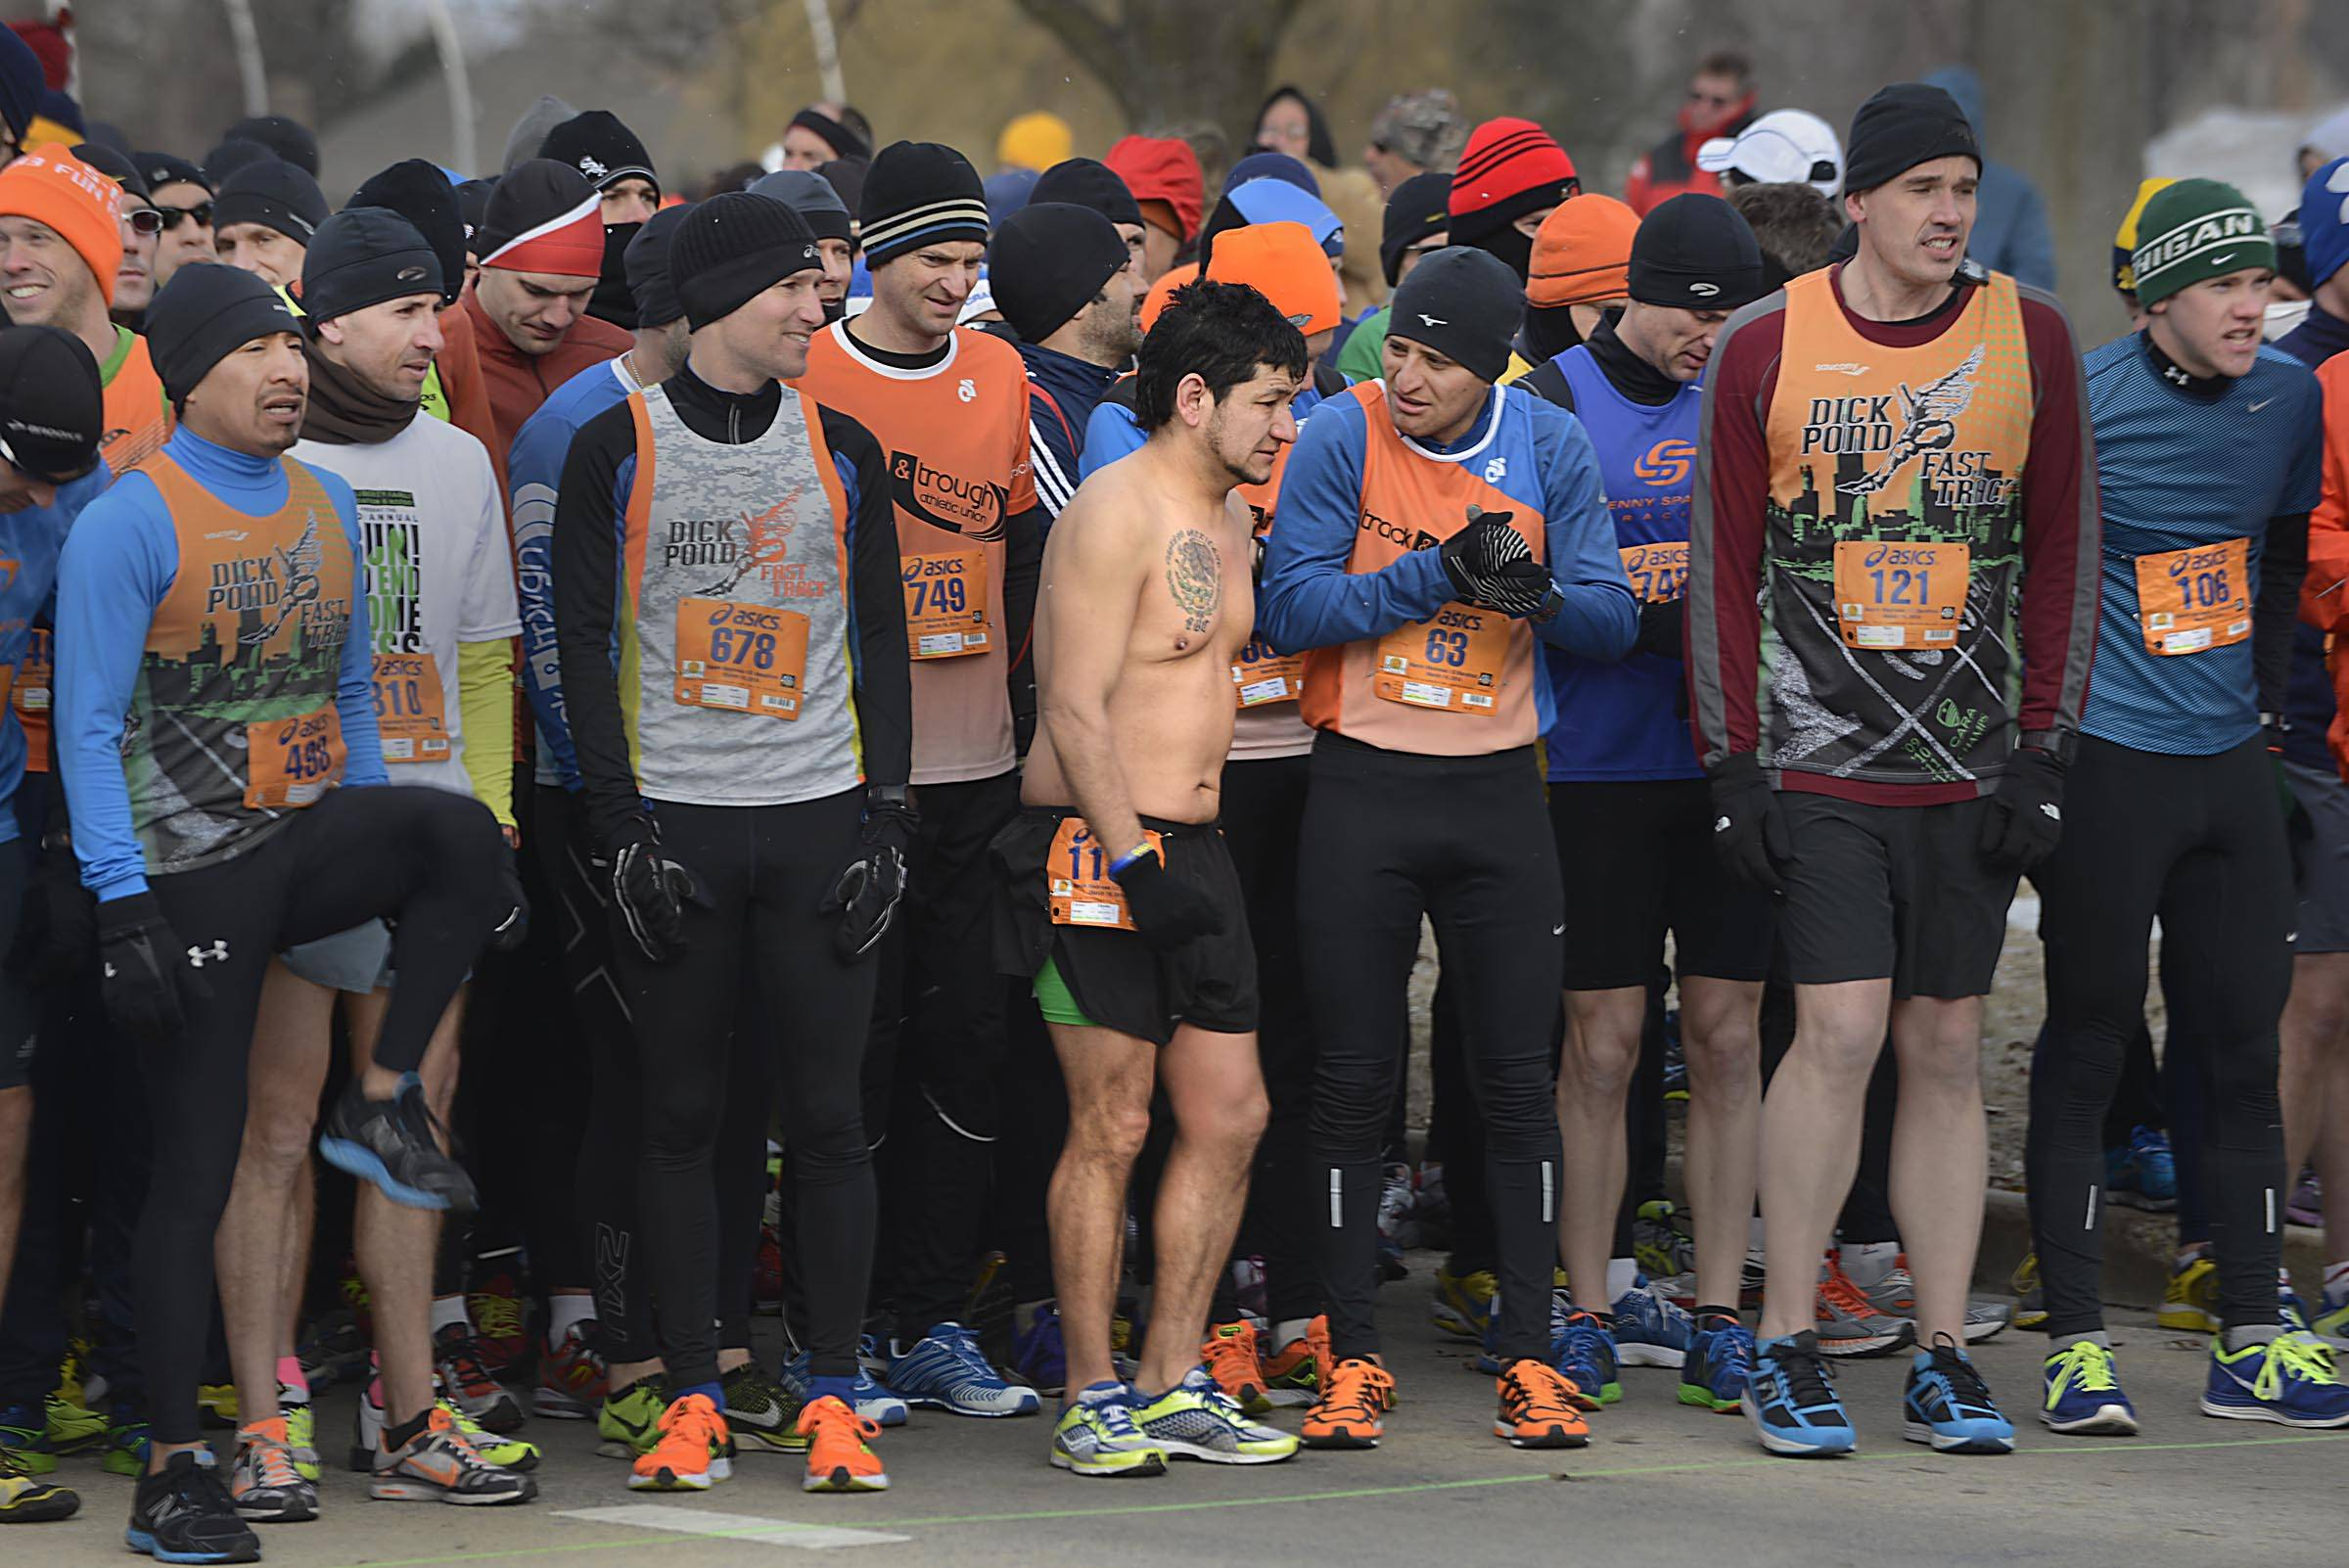 Elpidio Vilchez, of Chicago, draws attention from bundled up runners as they take the starting line, in below-zero wind chill temperatures, Sunday at the March Madness Half Marathon in Cary.